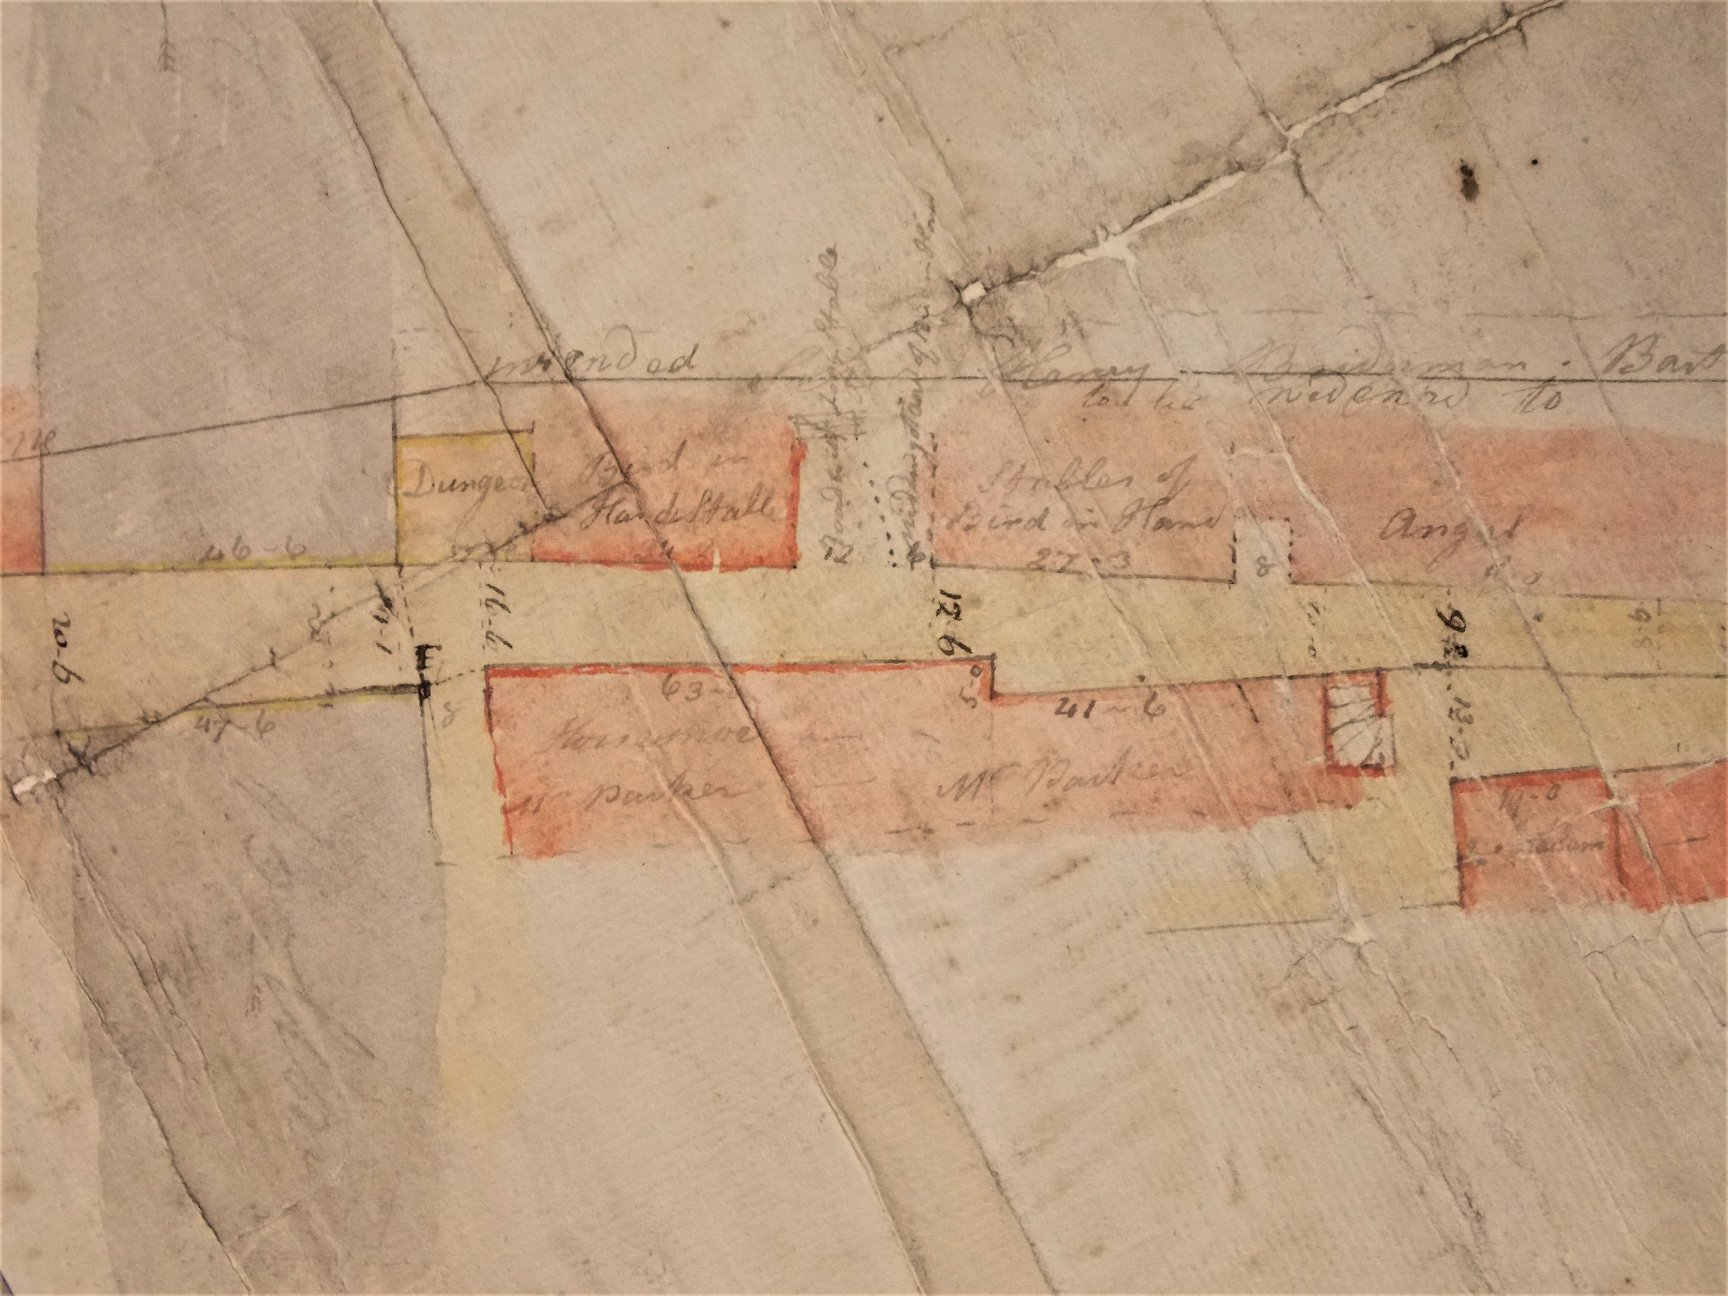 Section of a map of Windy Bank dating from 1797, showing the position of the dungeon (shaded yellow), next to the Bird in Hand stable.